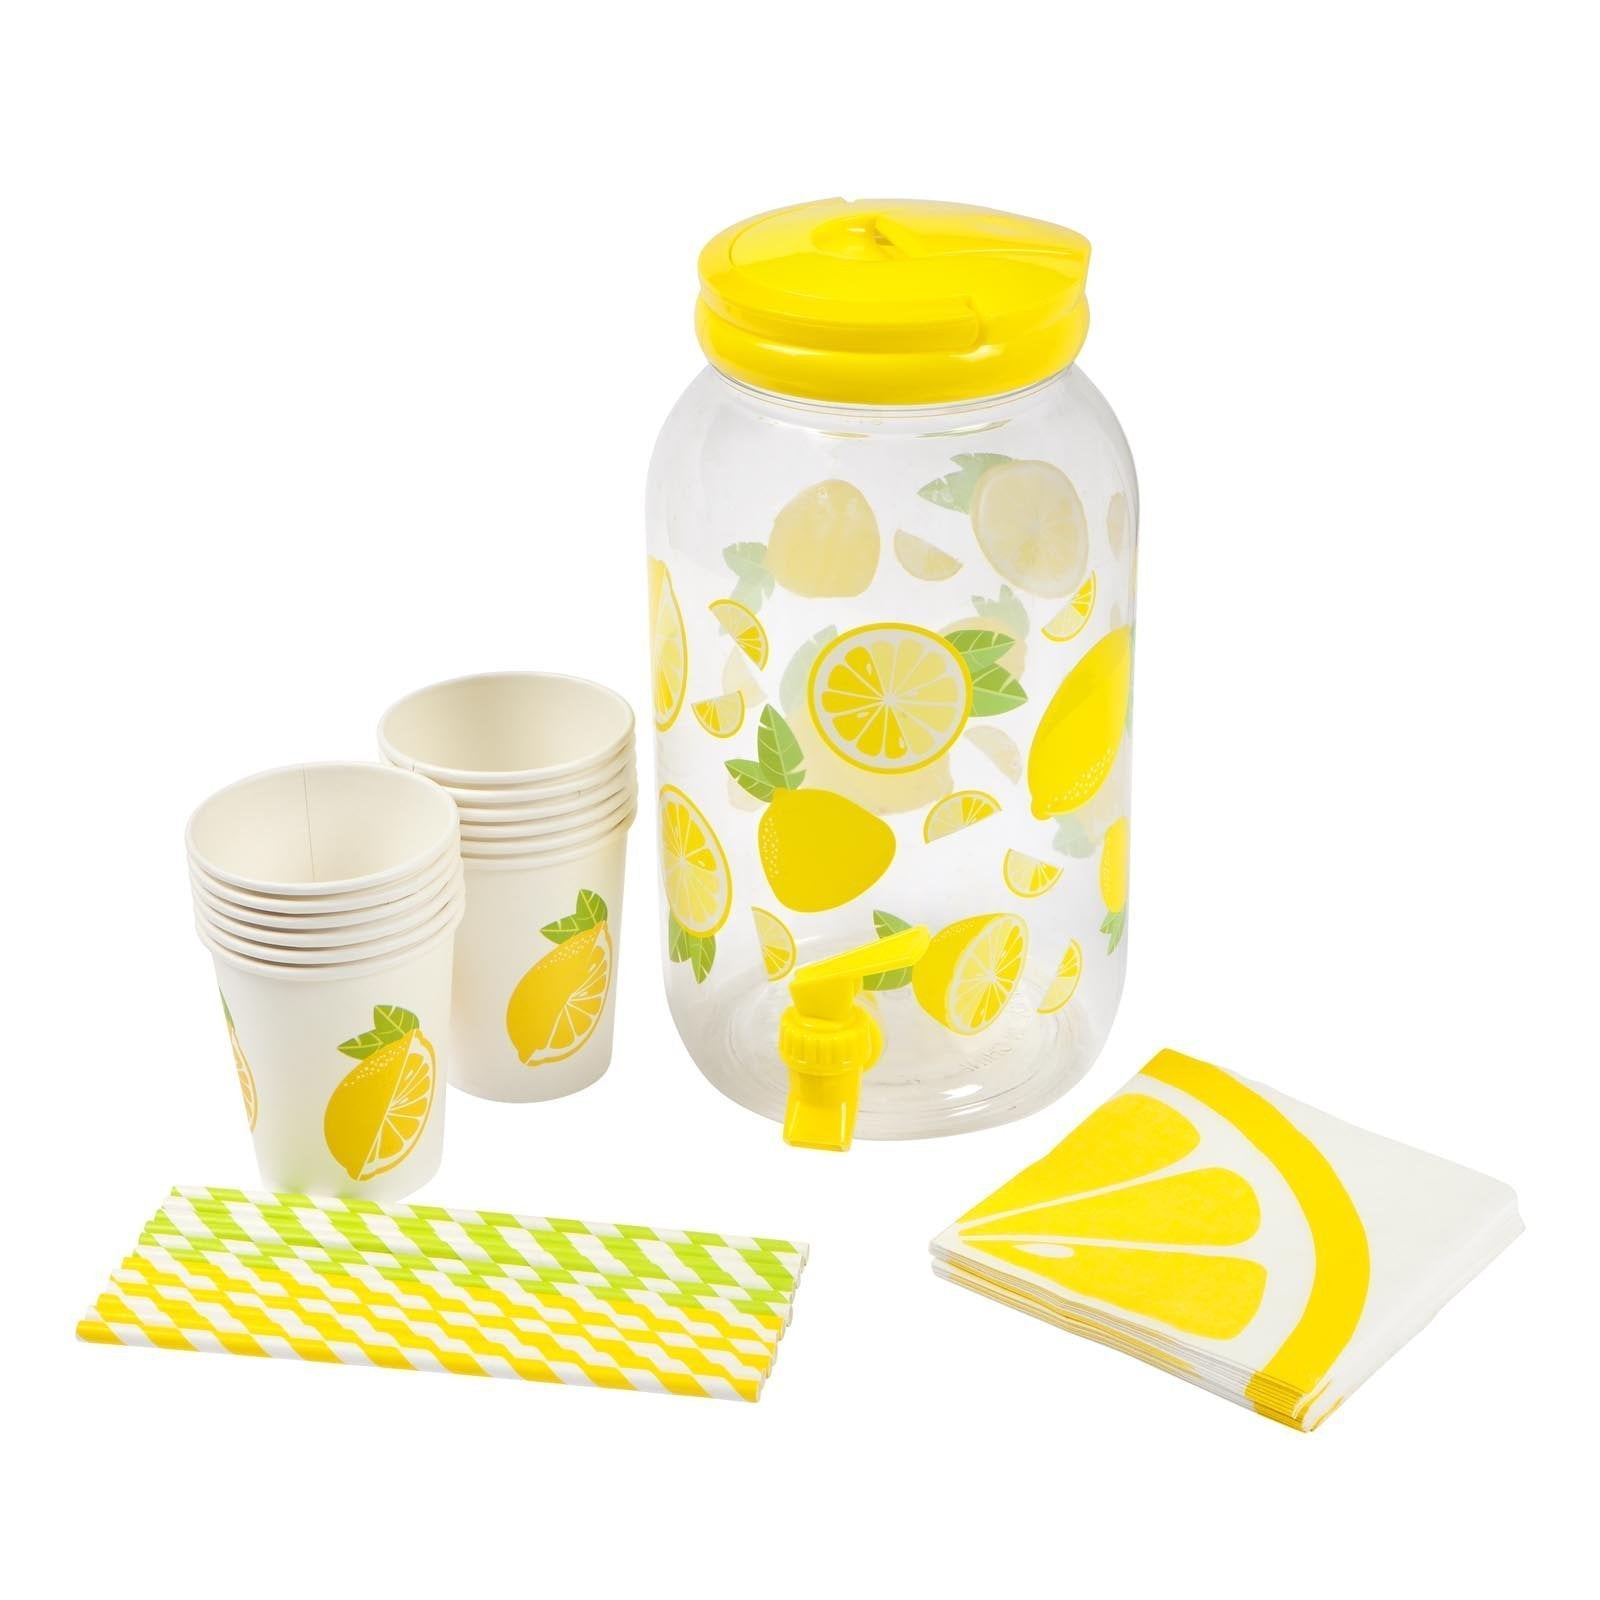 SunnyLife Drink Dispenser Kit - Lemonade